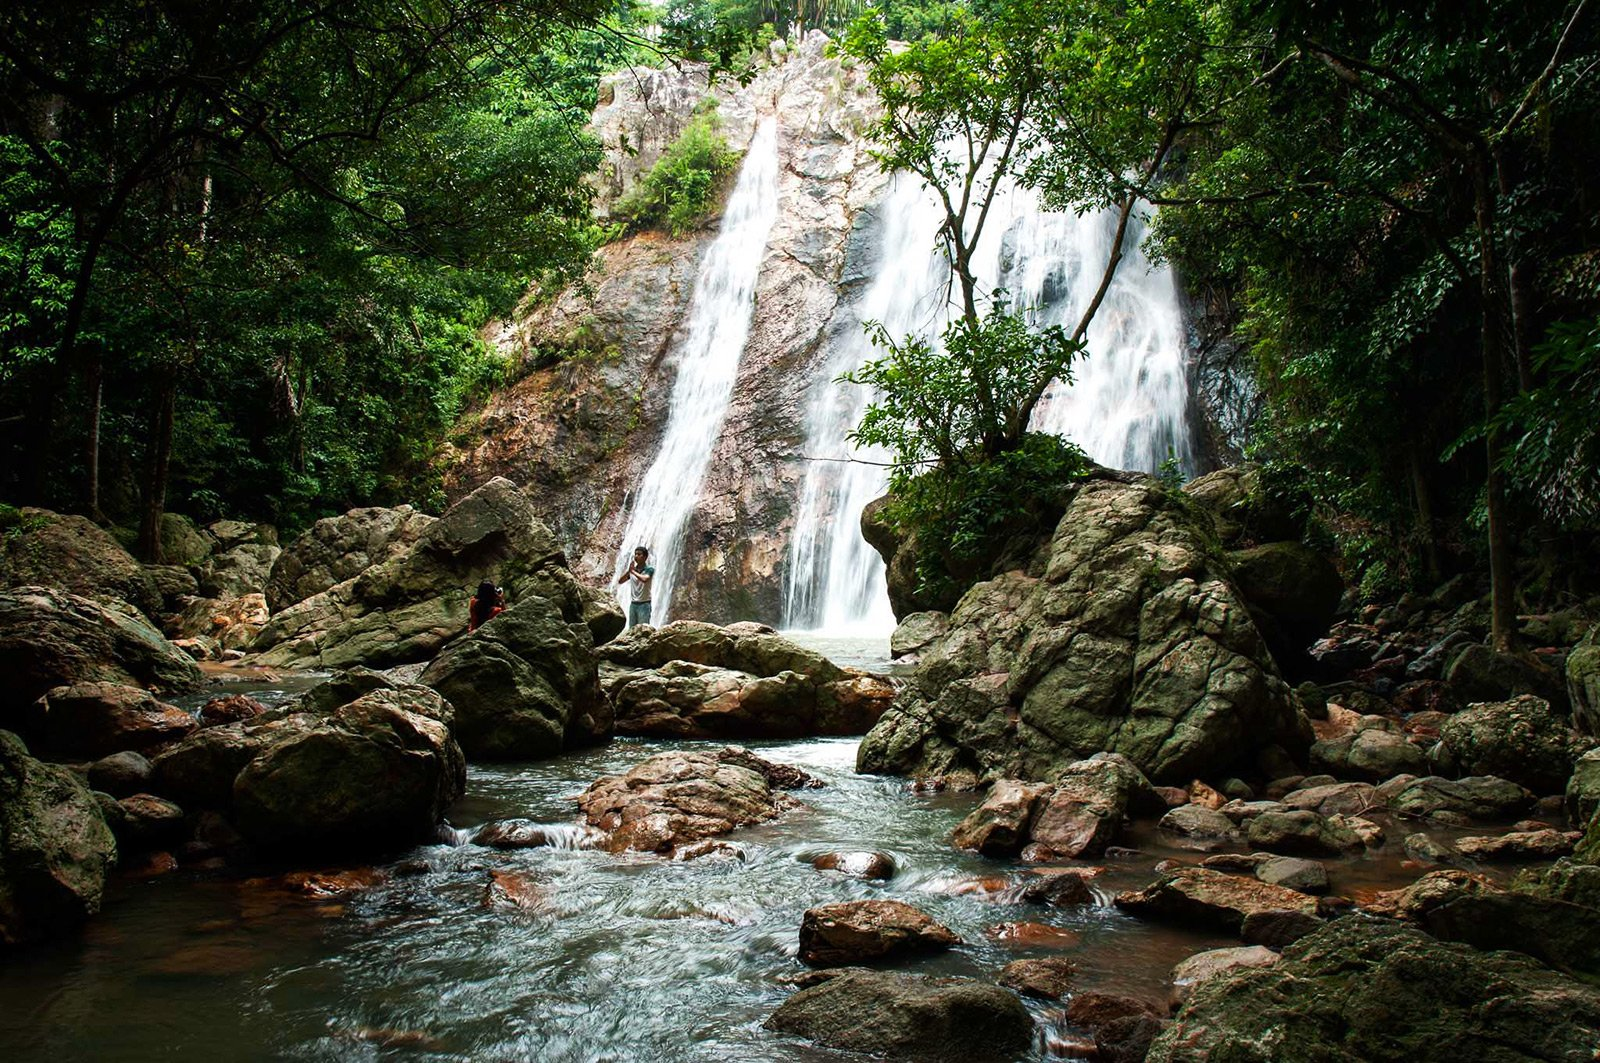 How to swim in Na Mueng 2 Waterfall on Koh Samui